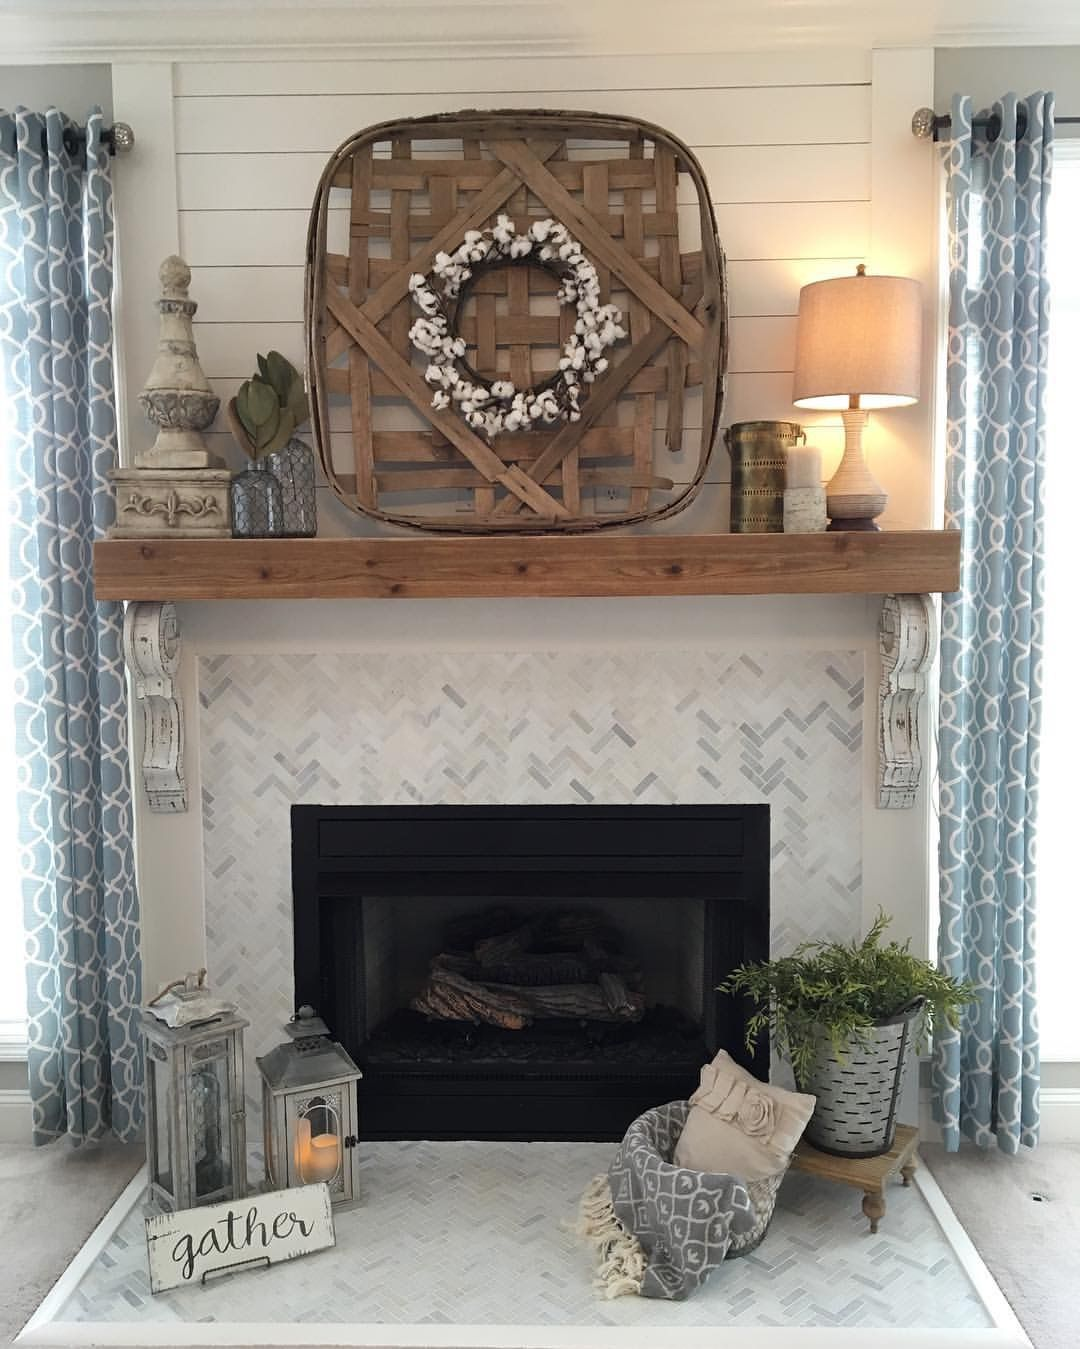 Fireplace Mantel Decor With Tv Shiplap And Herringbone Tile Fireplace Renovation